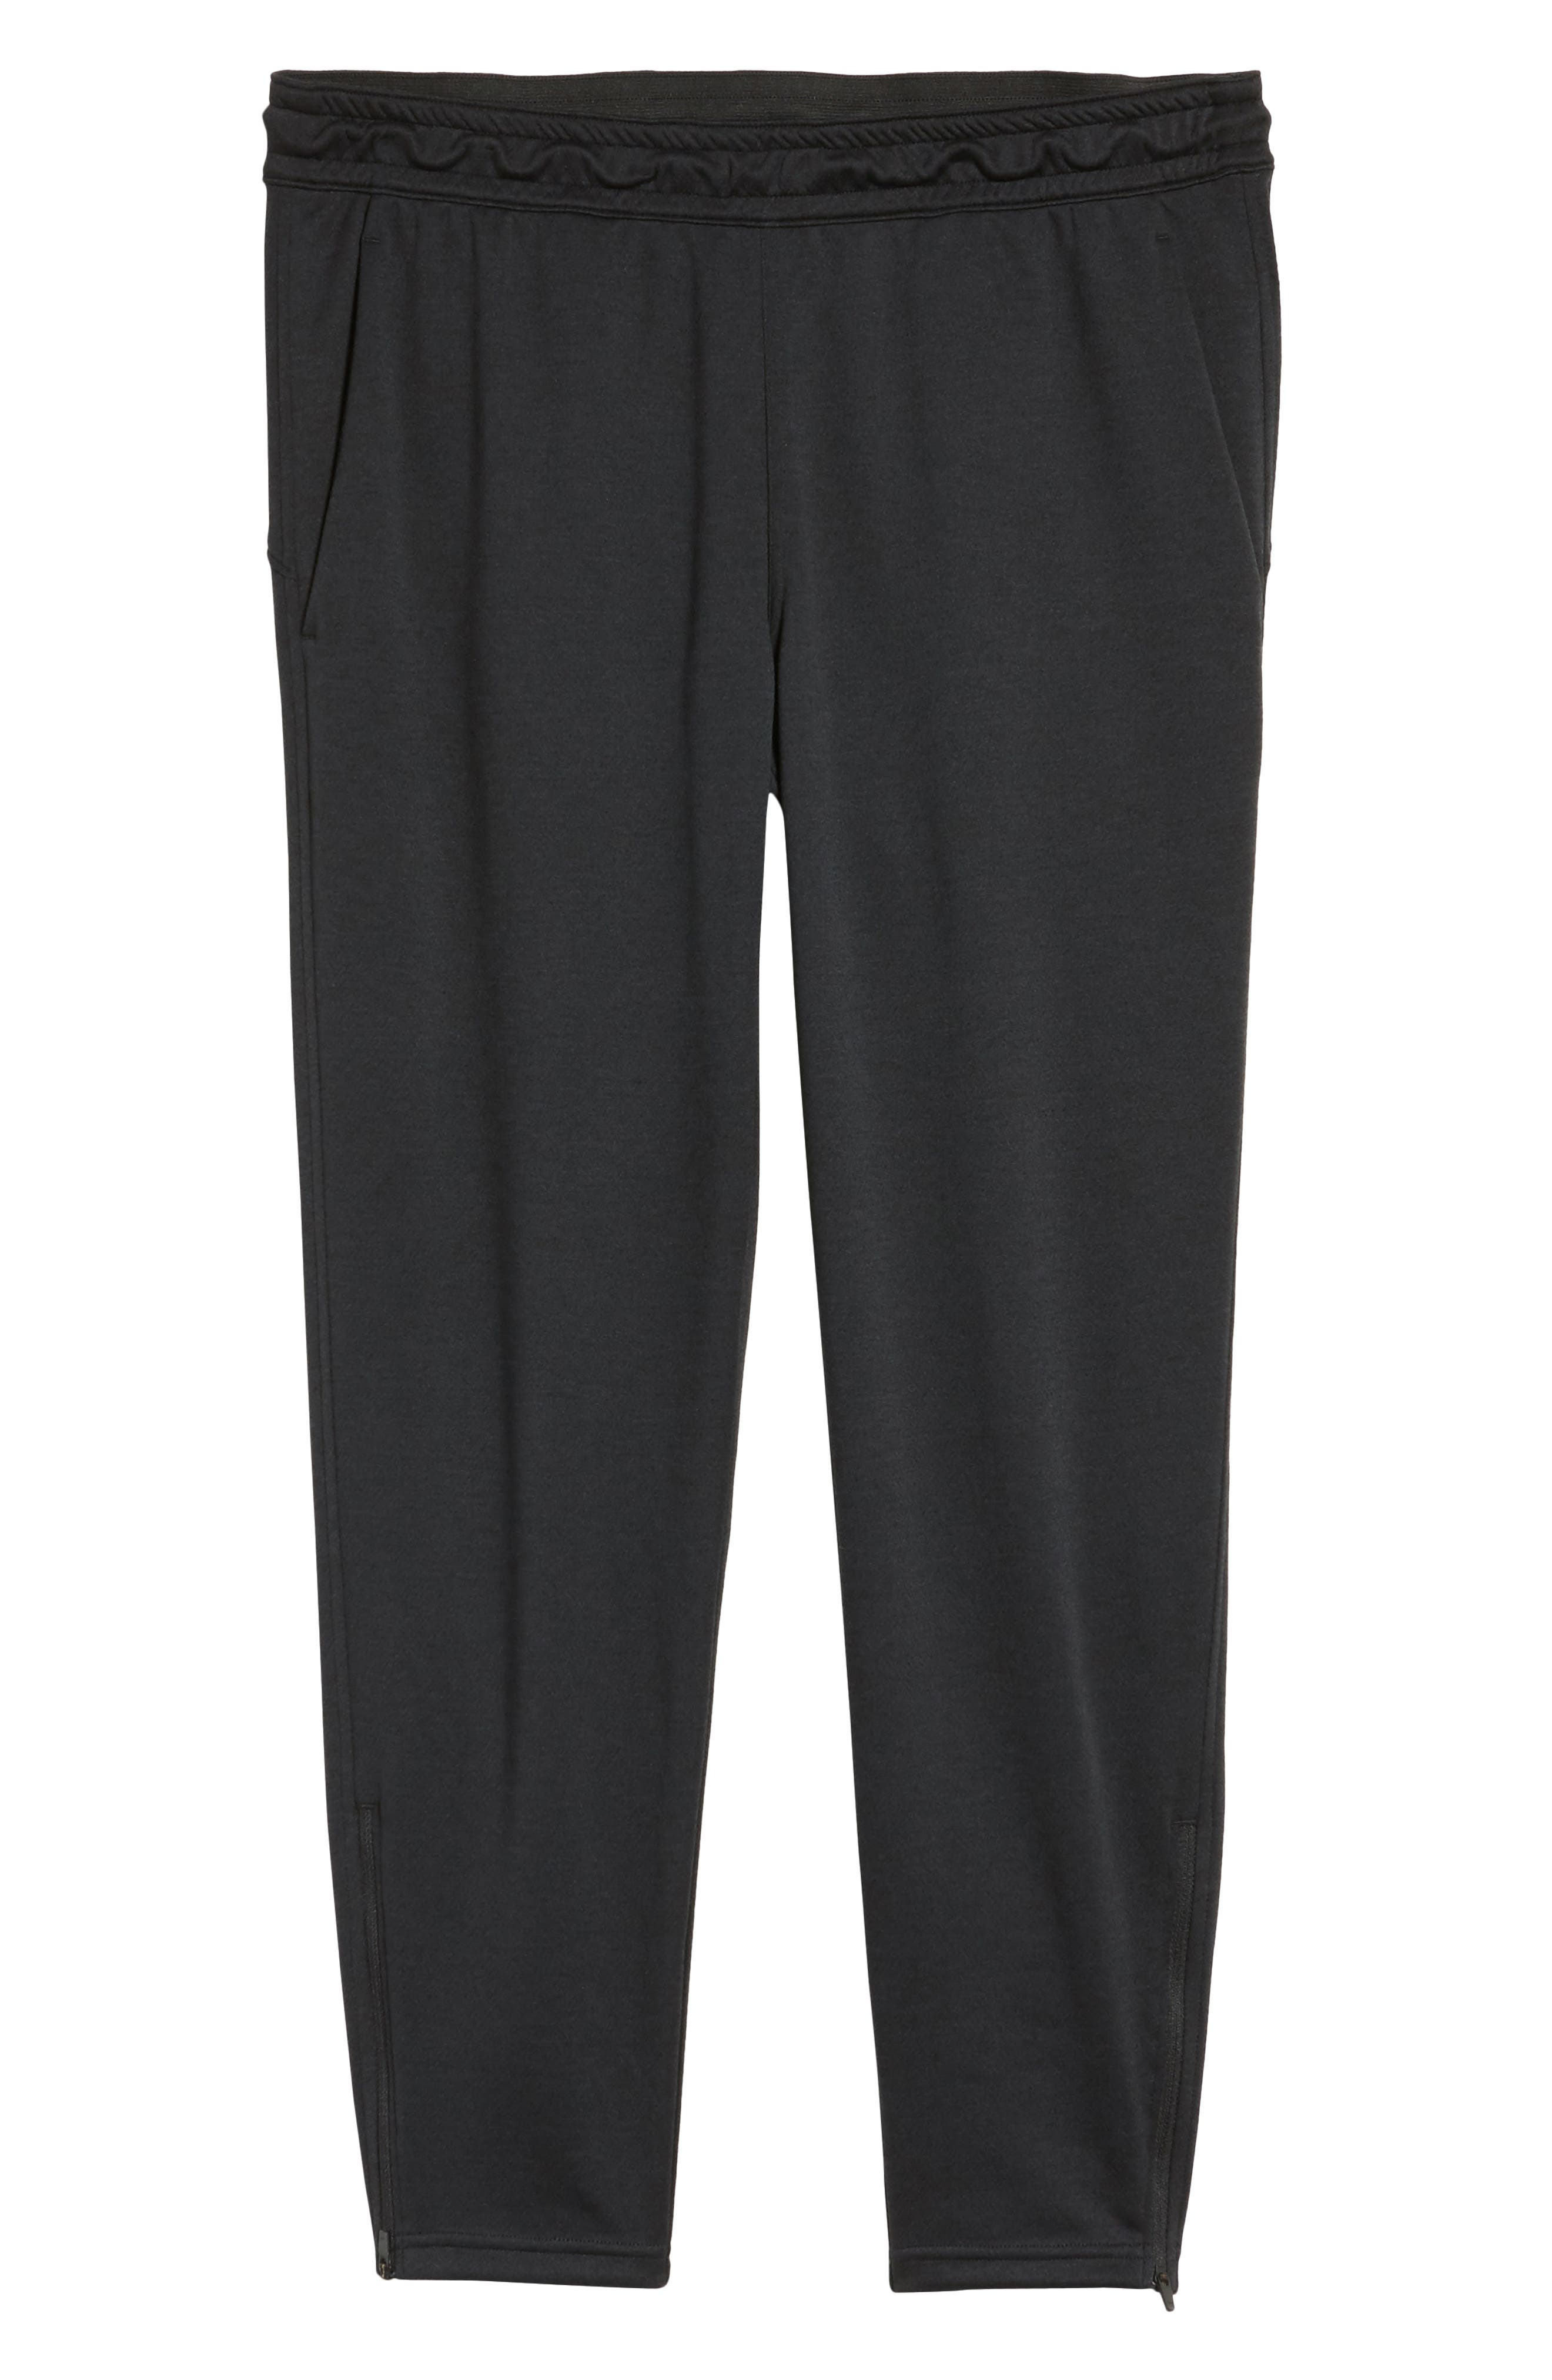 Cropped Jogger Pants,                             Alternate thumbnail 5, color,                             Black